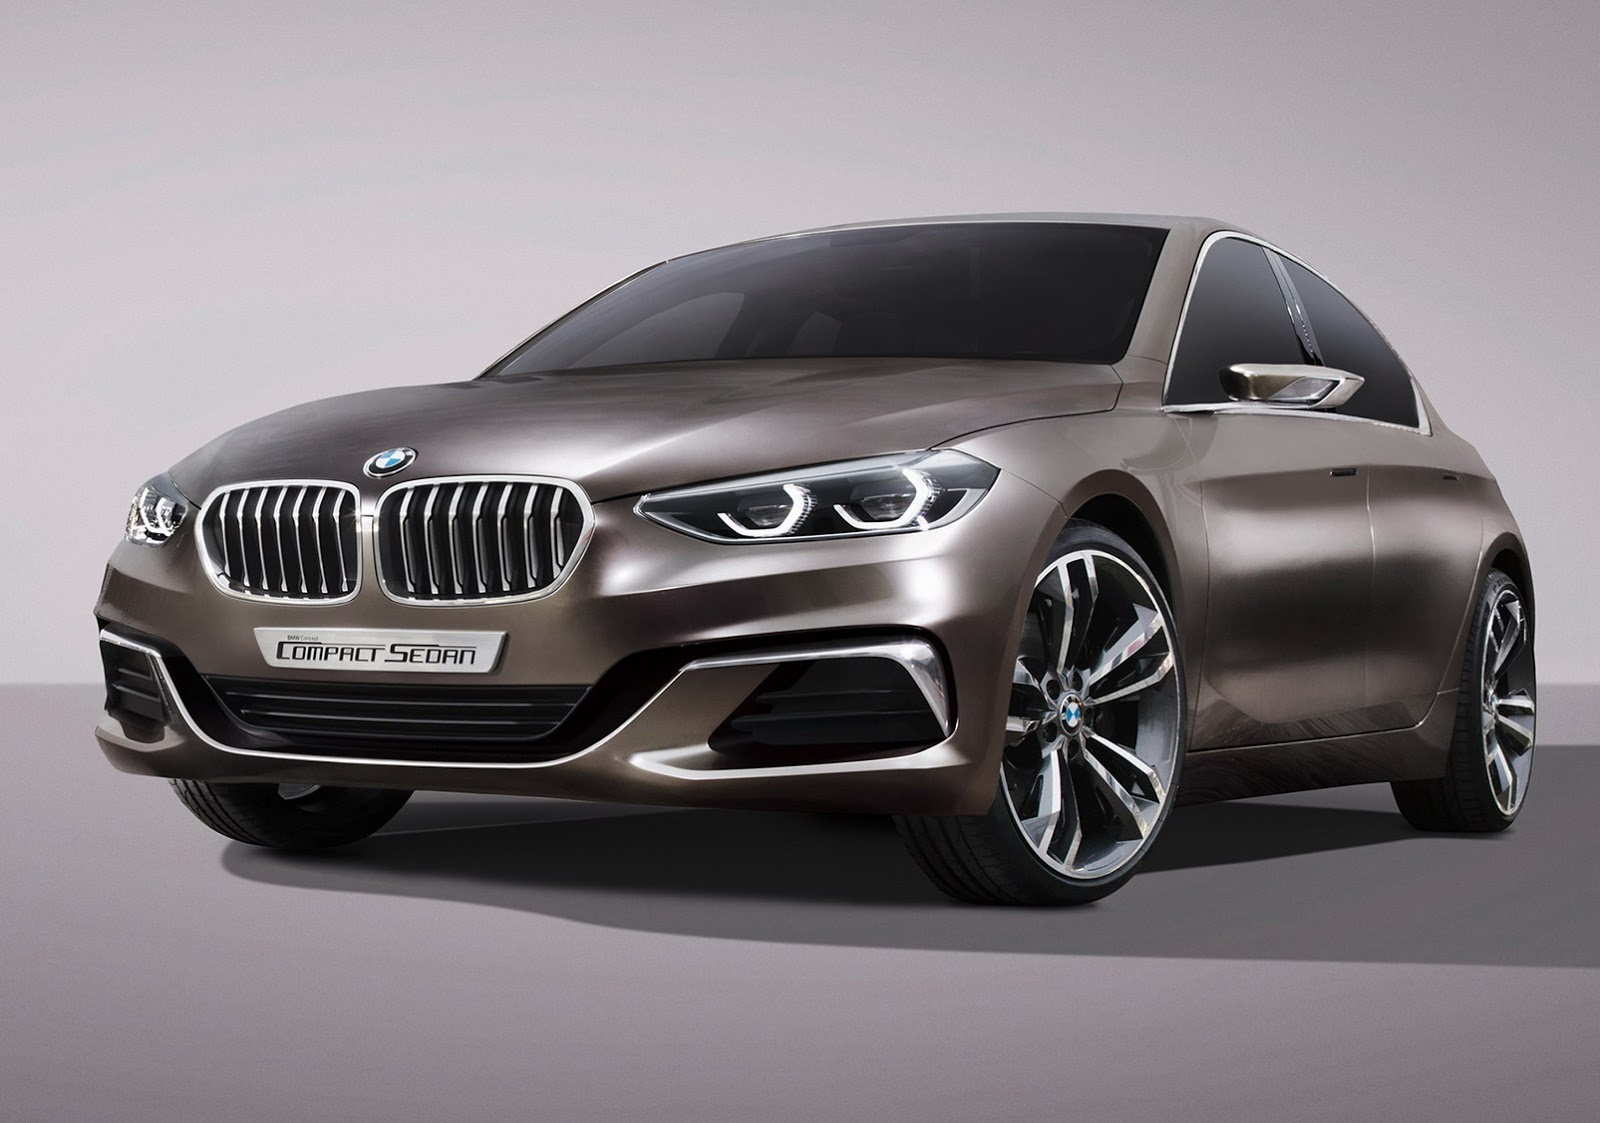 bmw concept compact sedan previews 1 or 2 series sedan. Black Bedroom Furniture Sets. Home Design Ideas